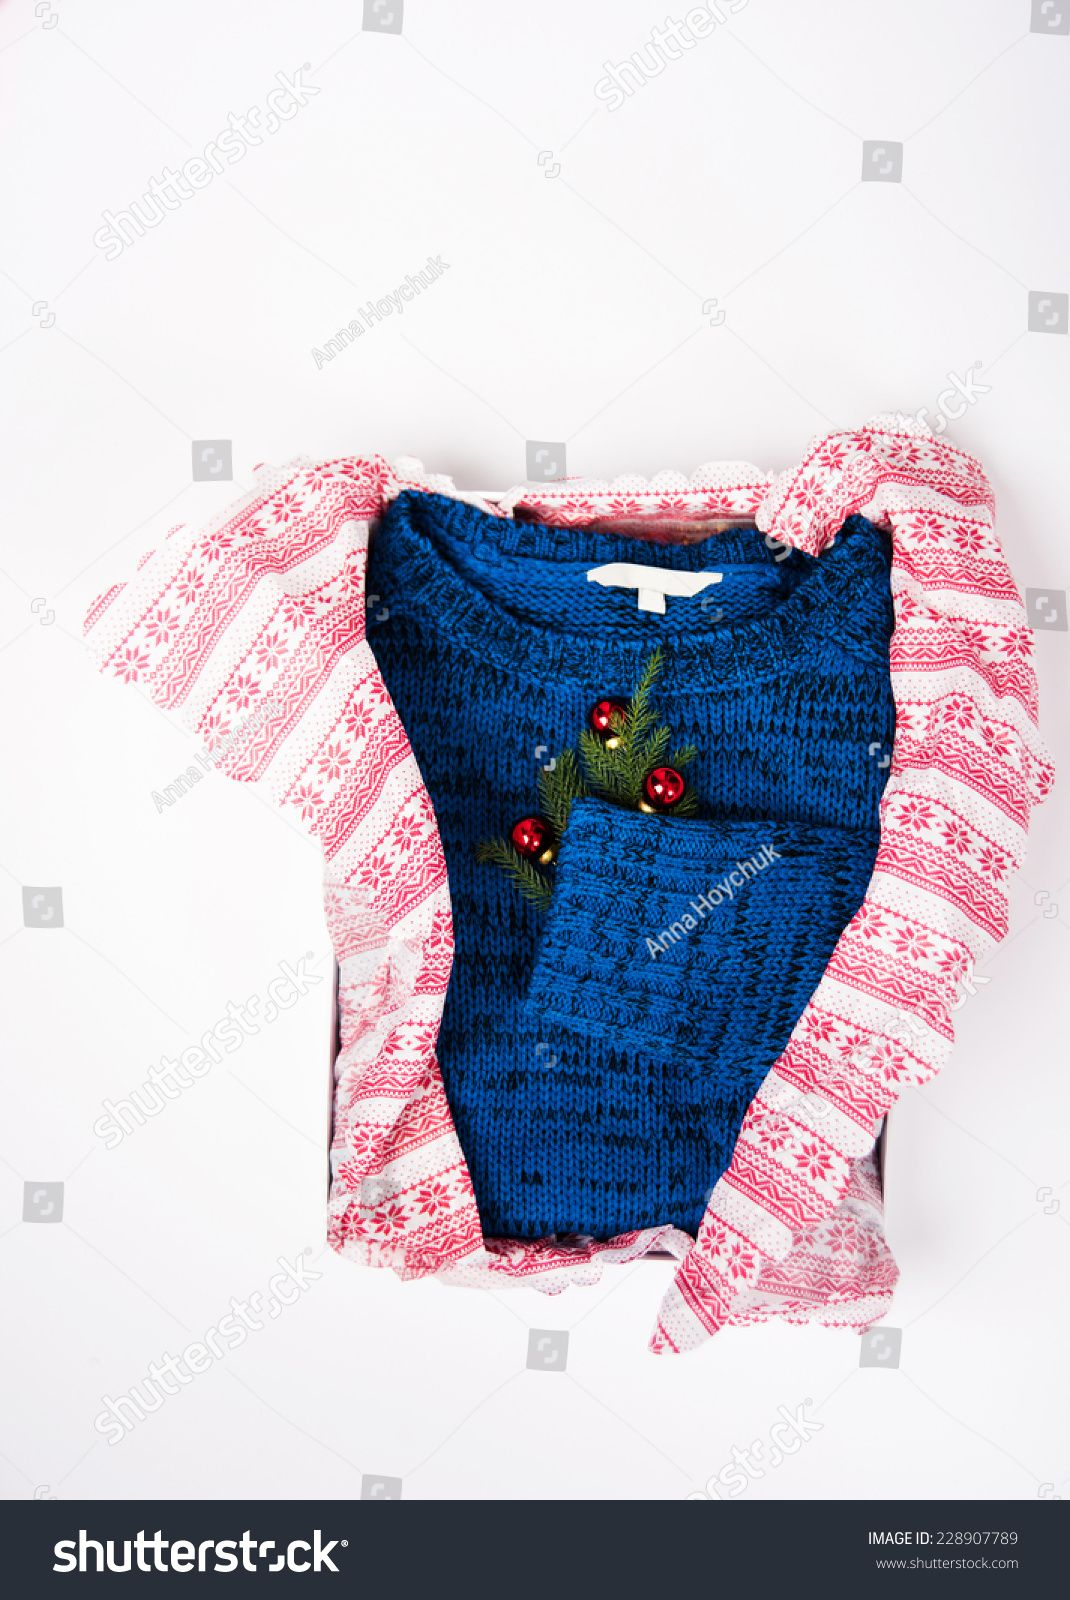 Royal Blue Sweater with Christmas Ornaments on White